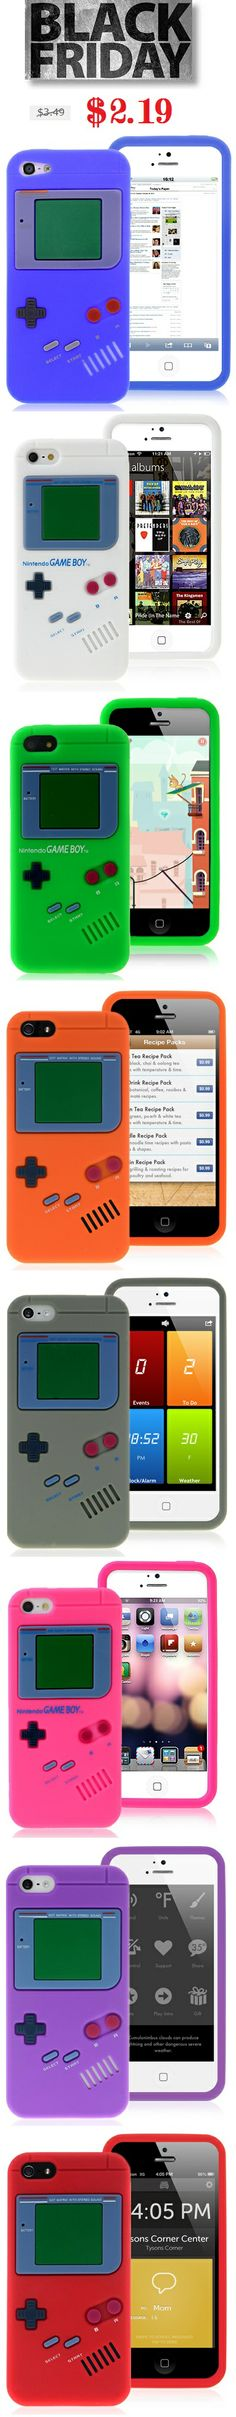 Black Friday 60% Discount on Nintendo Gameboy iPhone 5 5S Silicone Cases #blackfriday #60%off #discount #nintendo #gameboy #iphone5case #siliconecase #cases #iphone5 $2.19